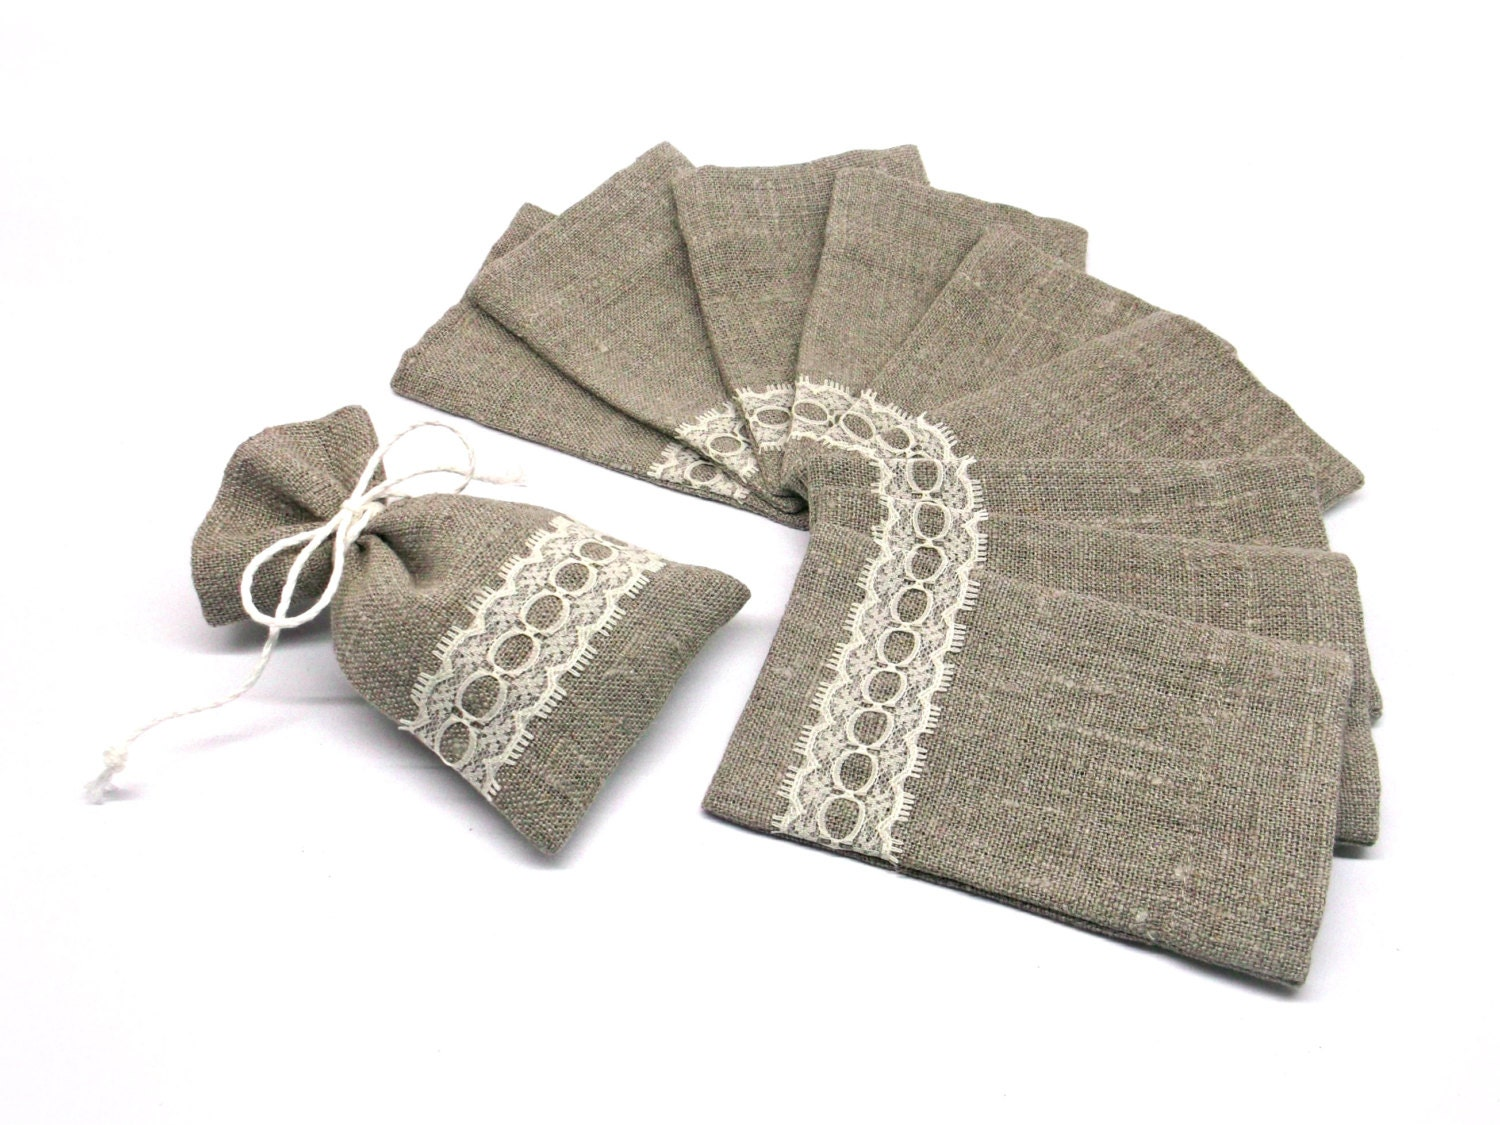 20 Rustic Wedding Thank You Bags Small Linen And Lace Favor